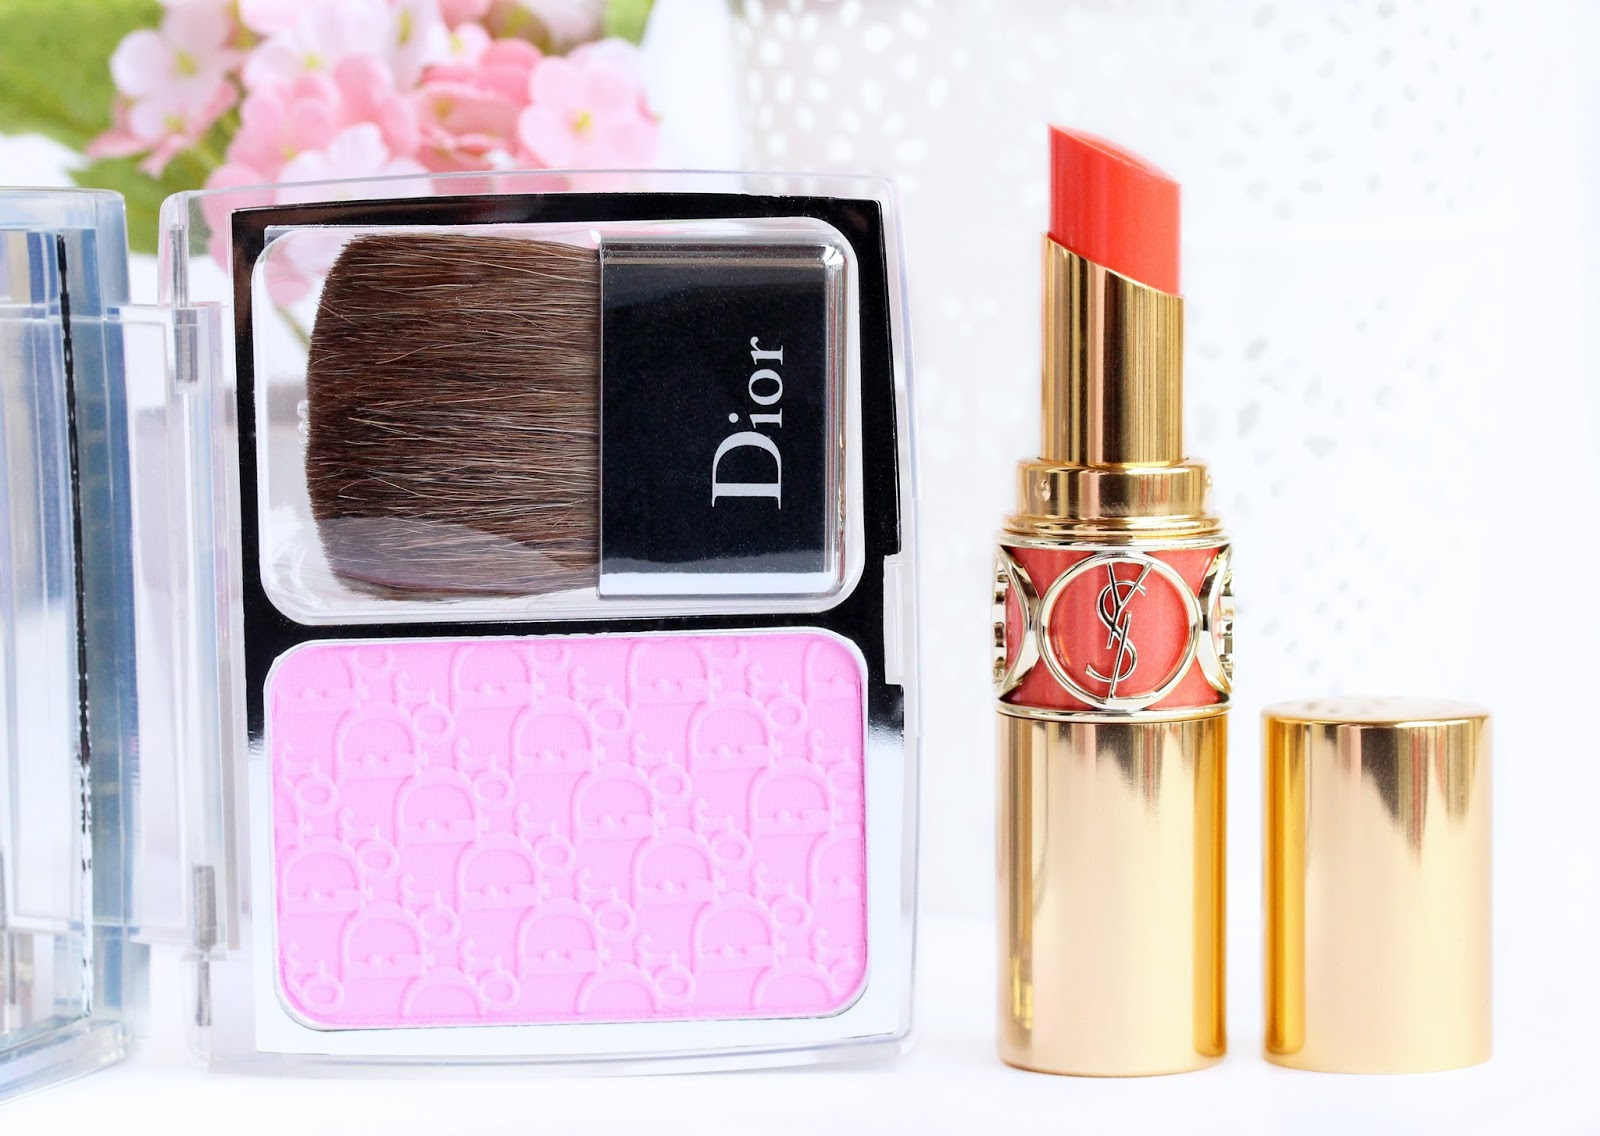 Dior Rosy Glow blush and YSL Rouge Volupte Shine in #14